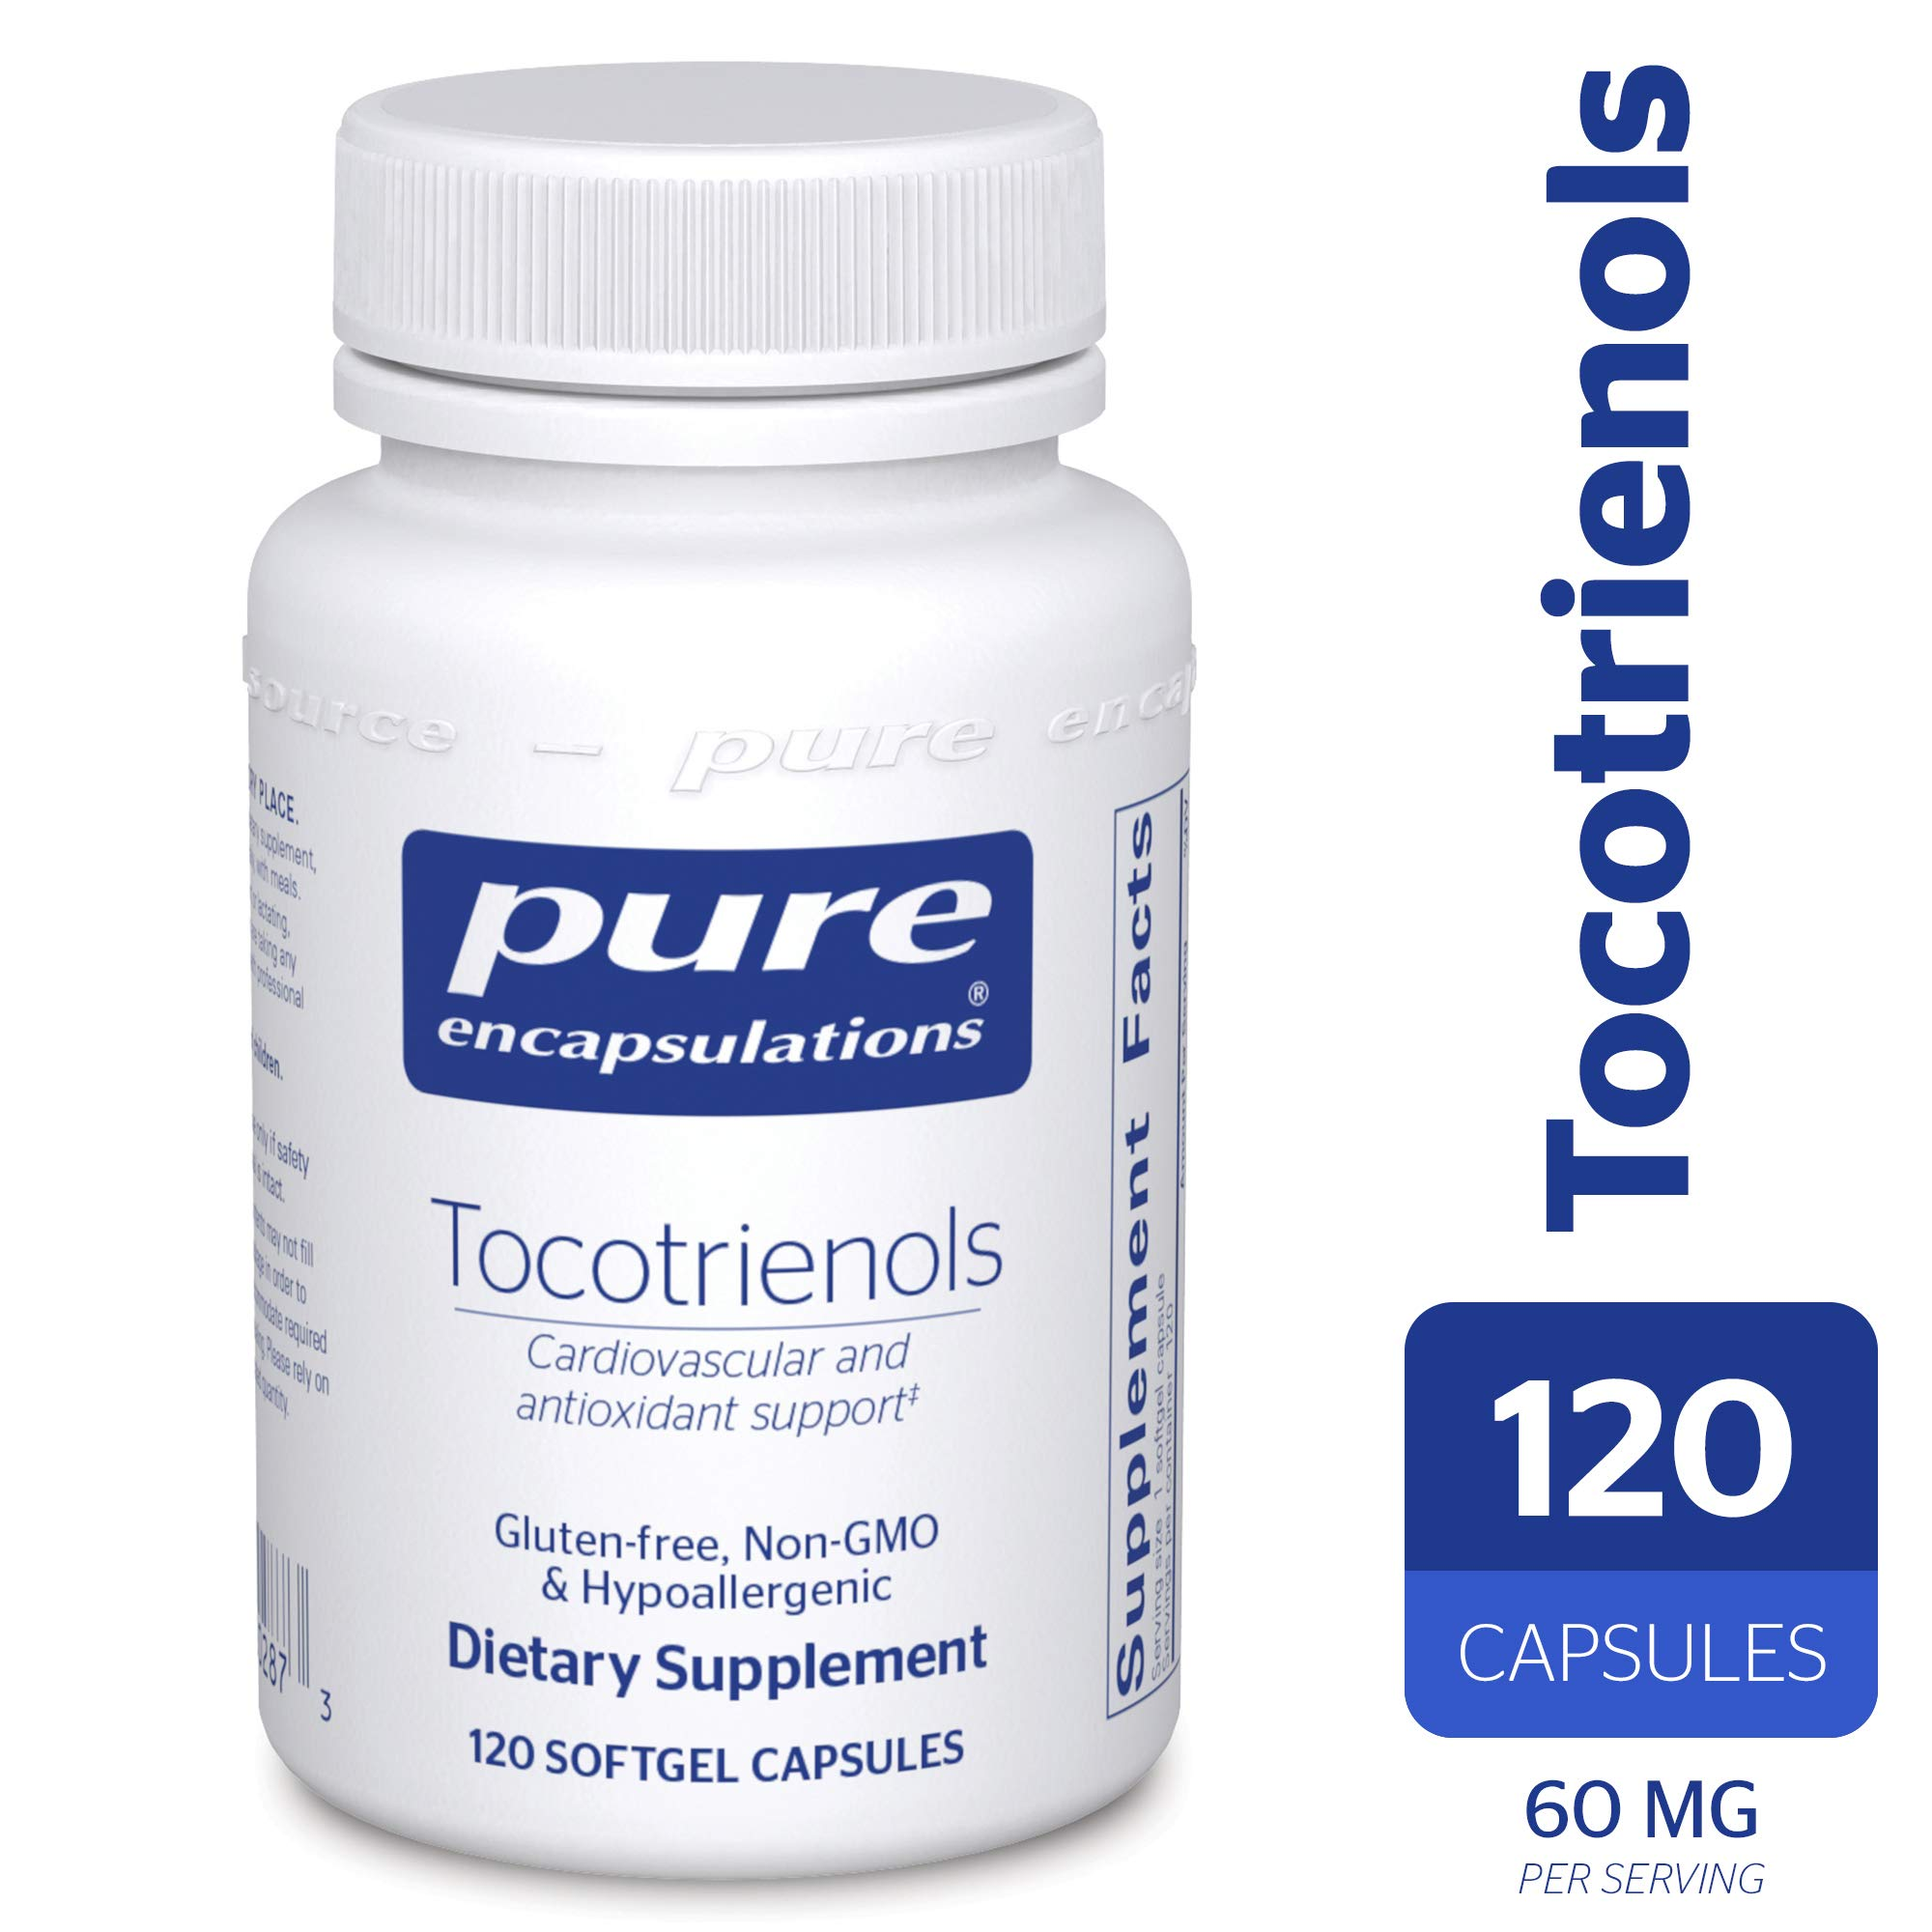 Pure Encapsulations - Tocotrienols - Hypoallergenic Supplement with Mixed Tocopherols for Cardiovascular and Antioxidant Support* - 120 Softgel Capsules by Pure Encapsulations